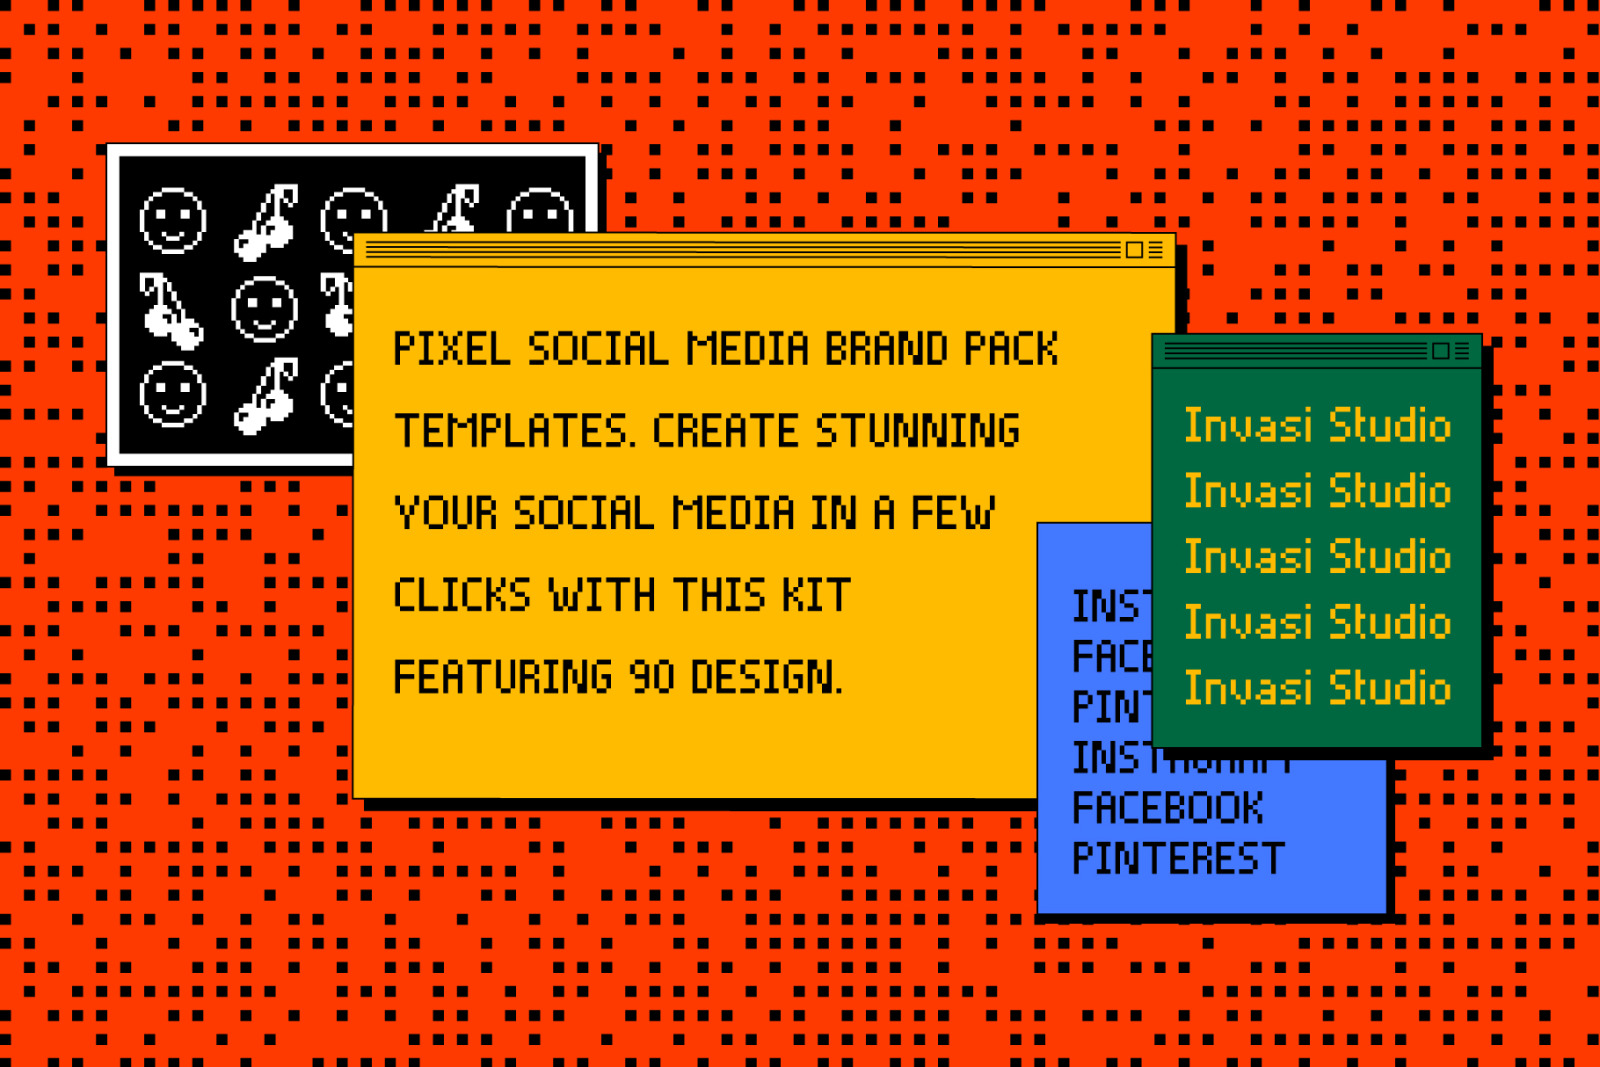 PIXEL-Social Media Brand Templates